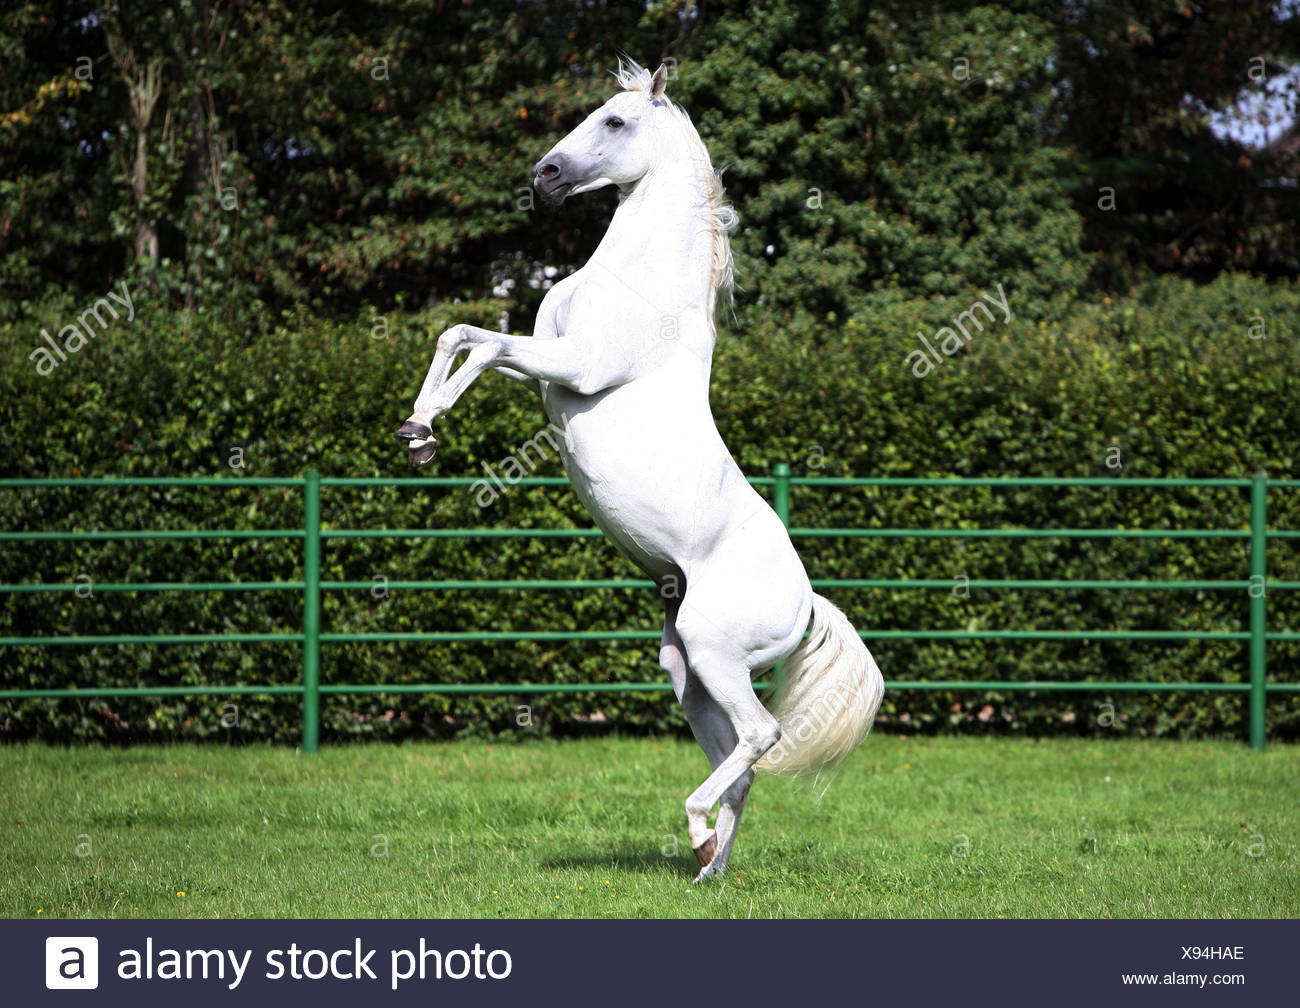 A White Horse Rearing On A Paddock Cologne Germany Stock Photo Alamy